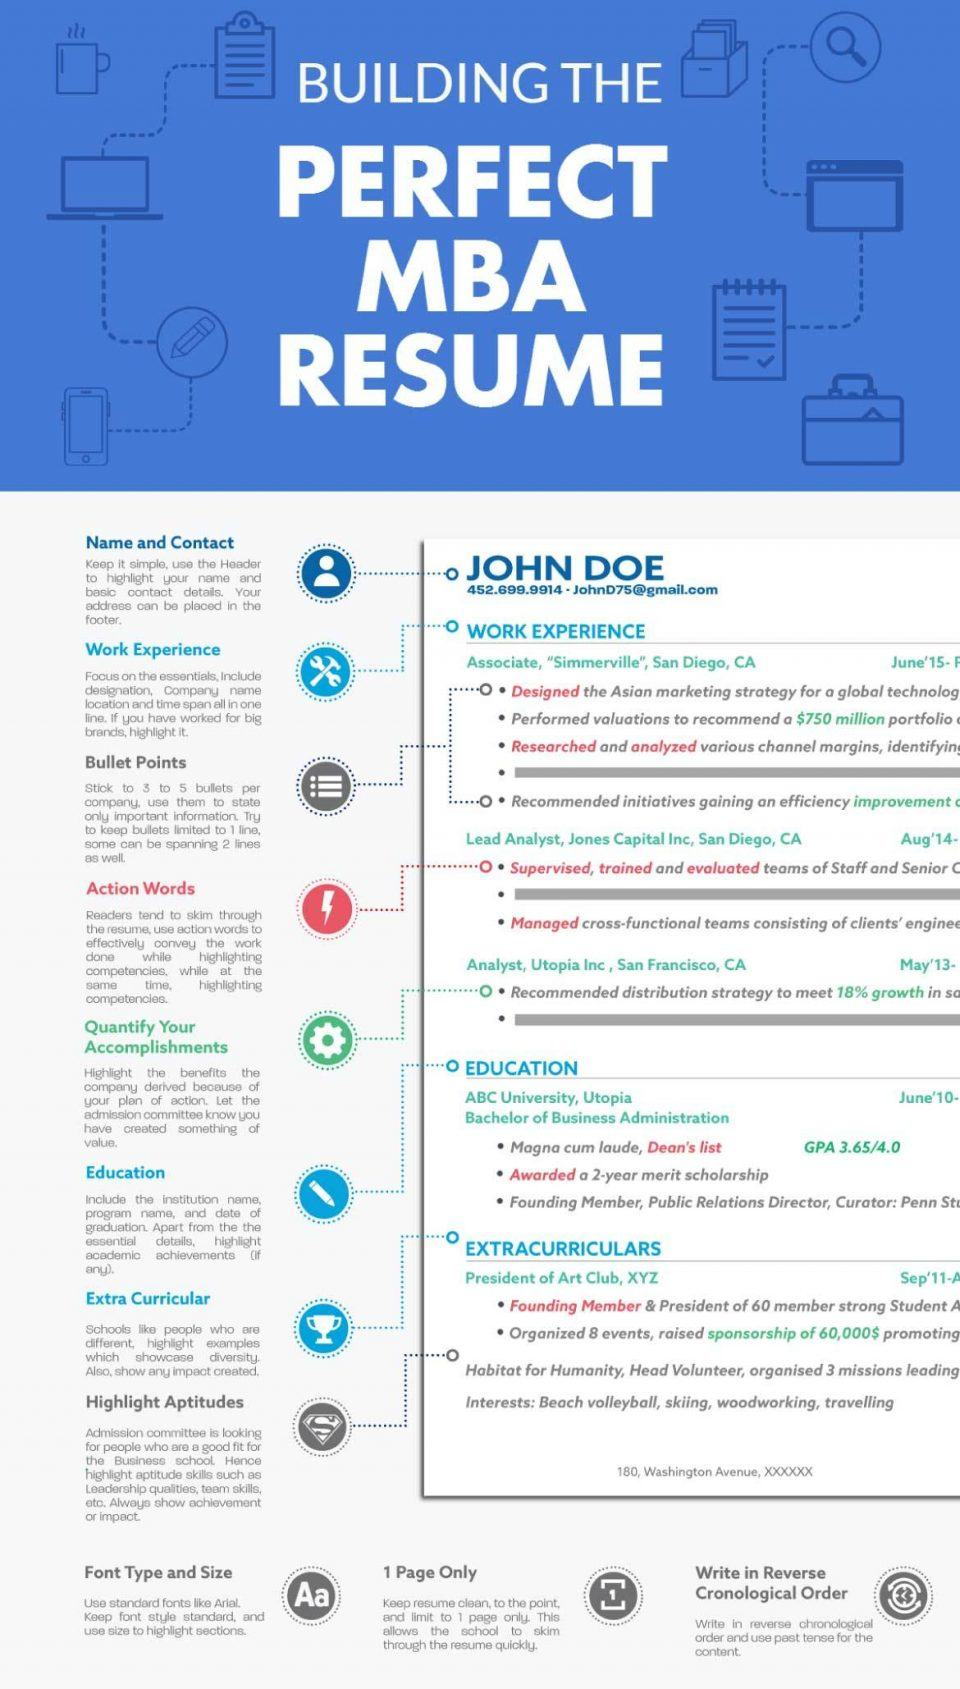 Resume for mba admission